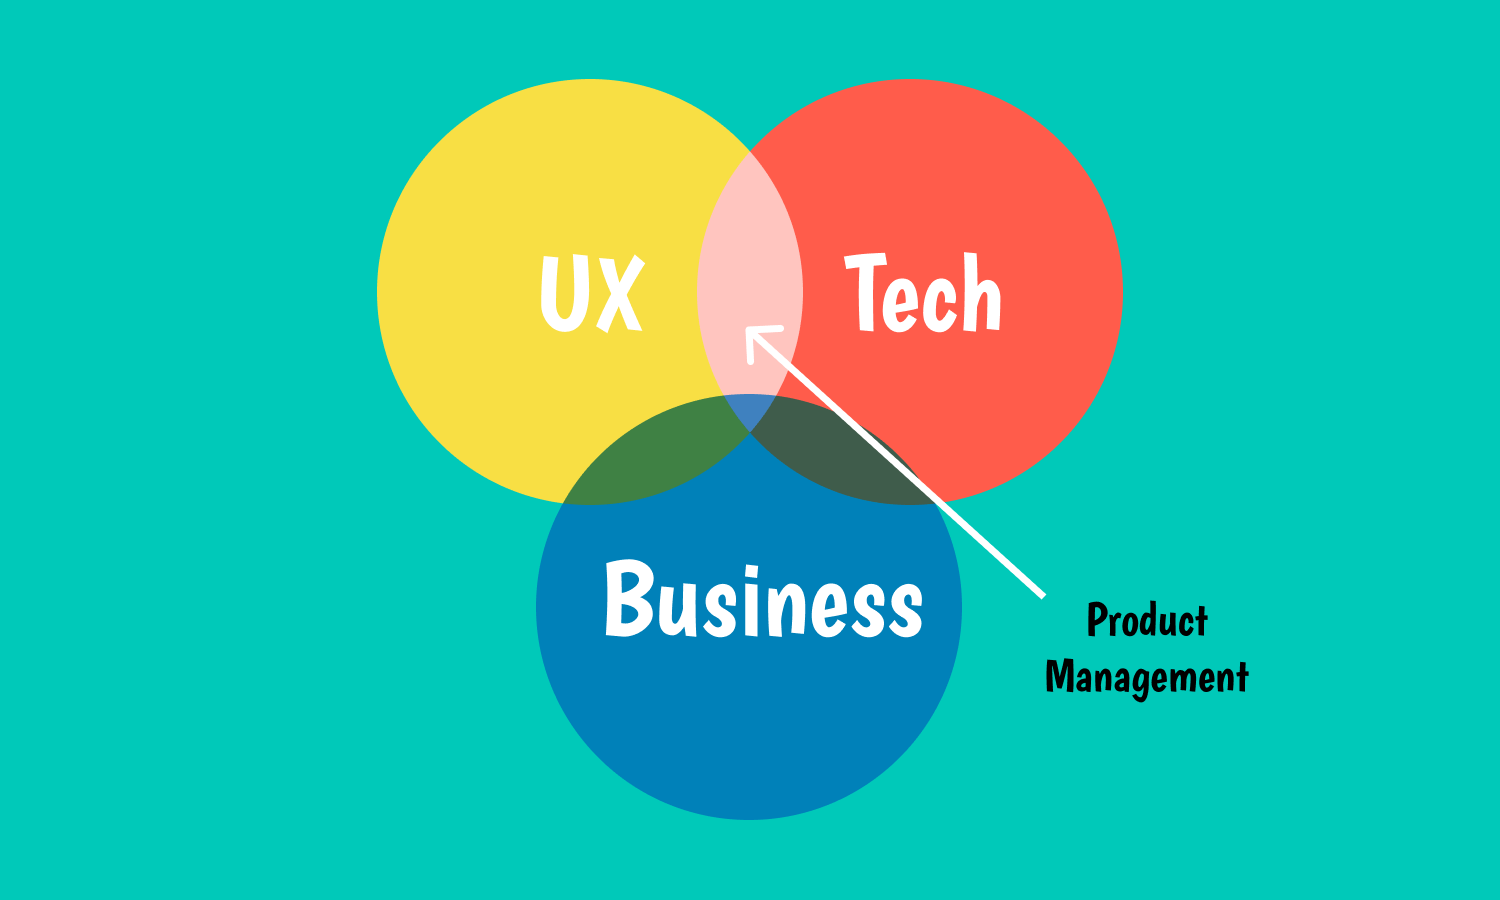 What are product managers?